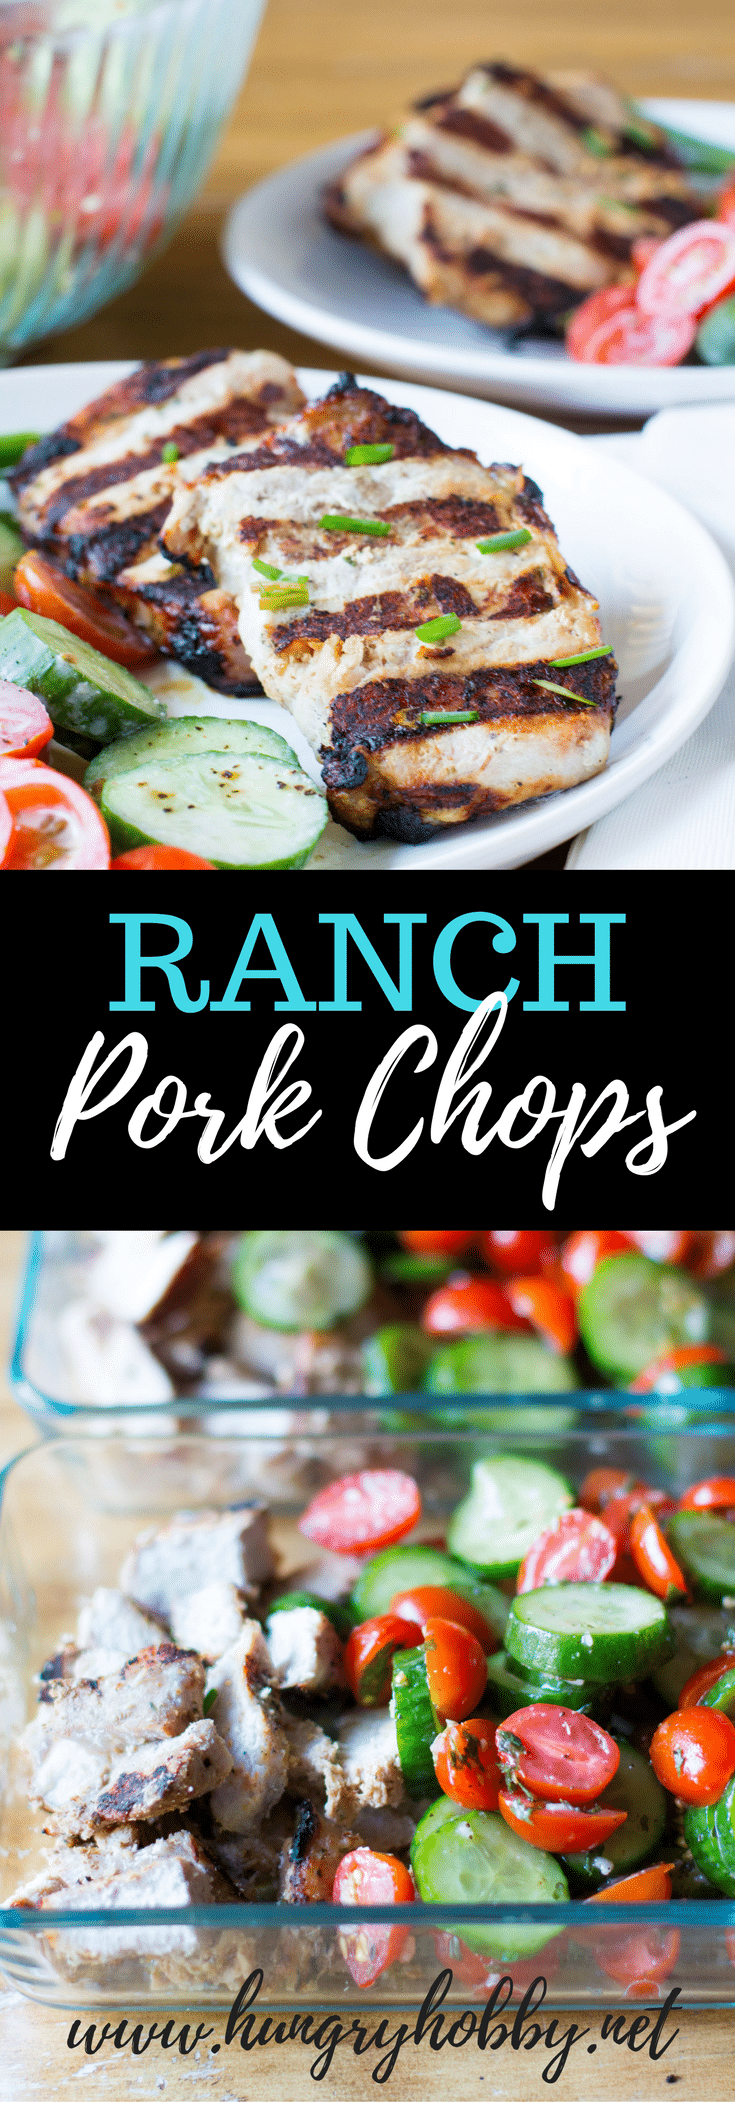 Grilled Ranch Pork Chops are marinated in rich buttermilk, then grilled to perfection. Serve with Cucumber Tomato Salad tossed with Greek Yogurt Feta Ranch!